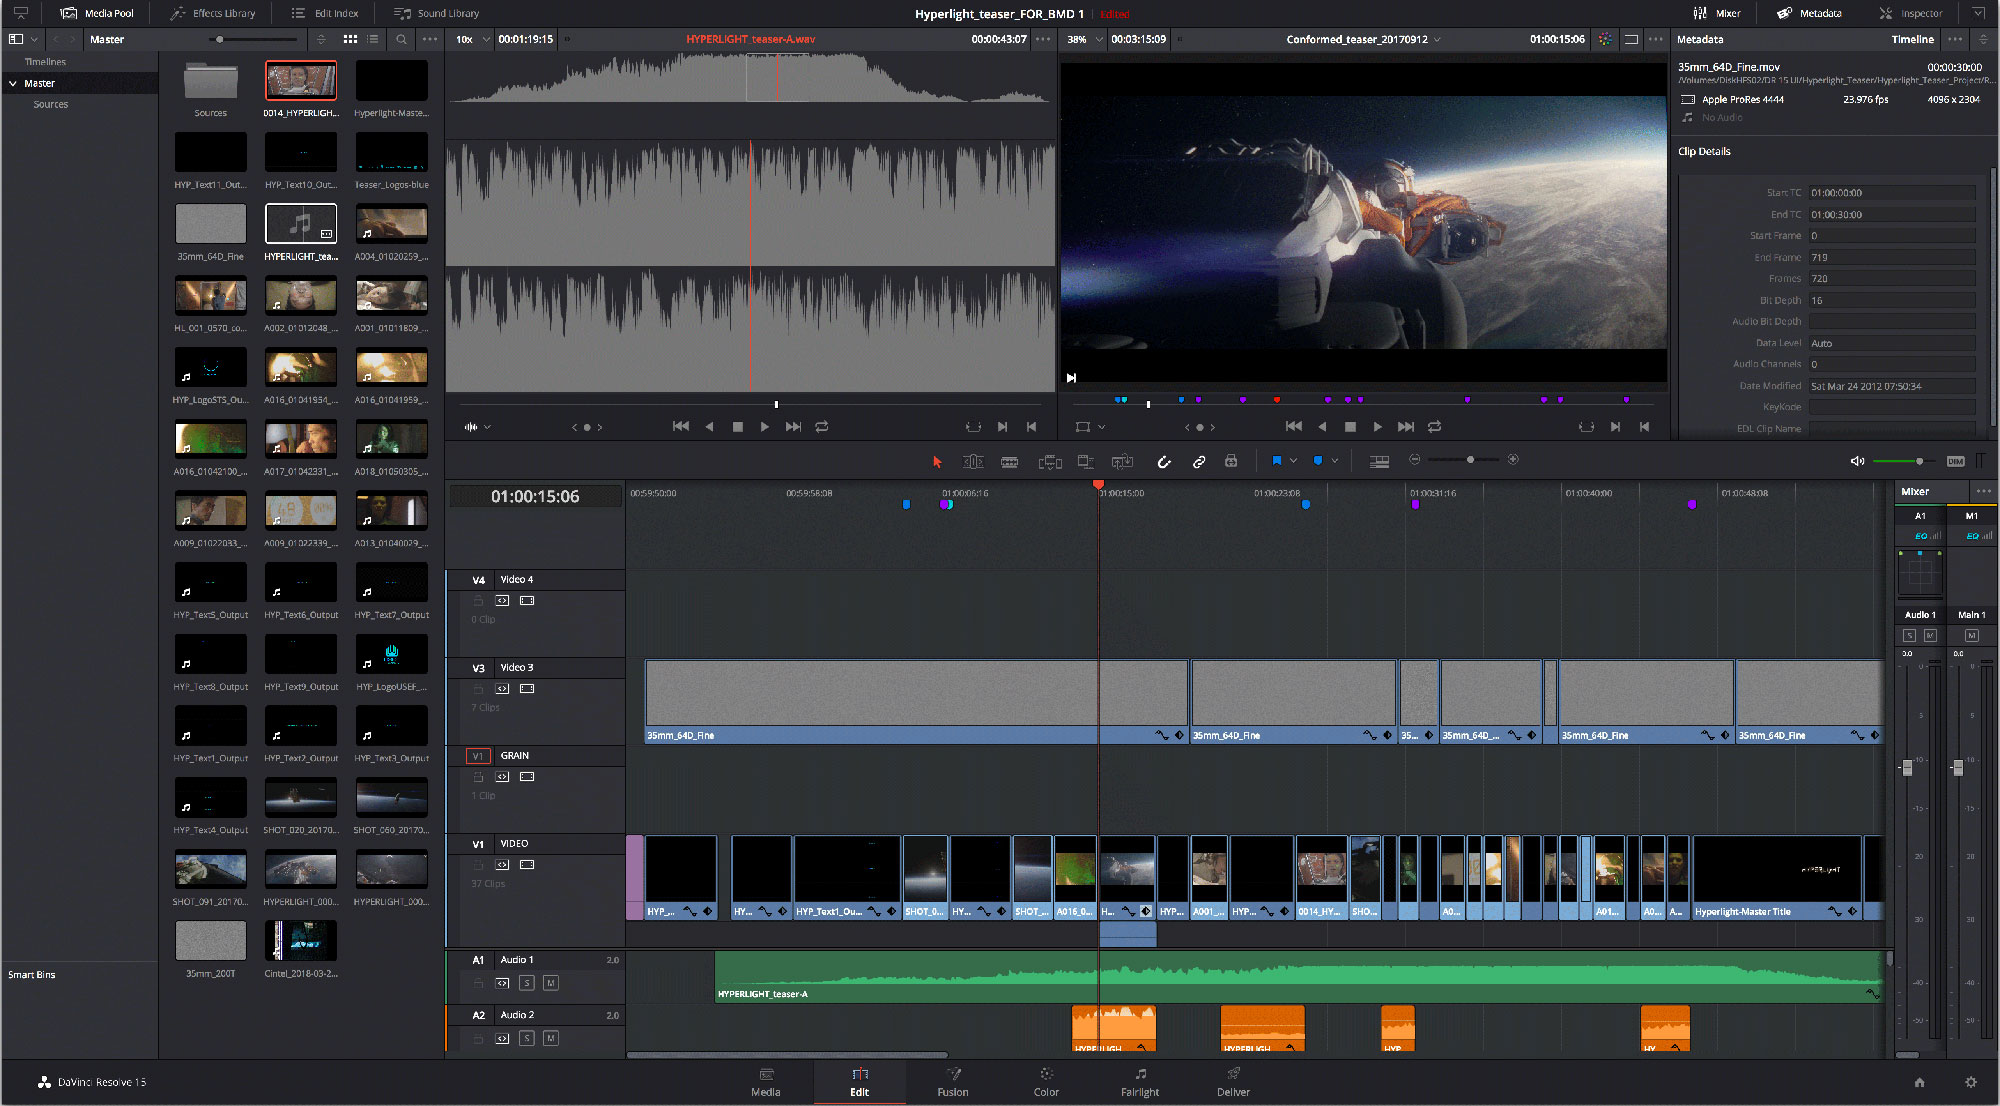 Blackmagic DaVinci Resolve Update 15.2.4 brings better H.264/H.265 encoding among other things